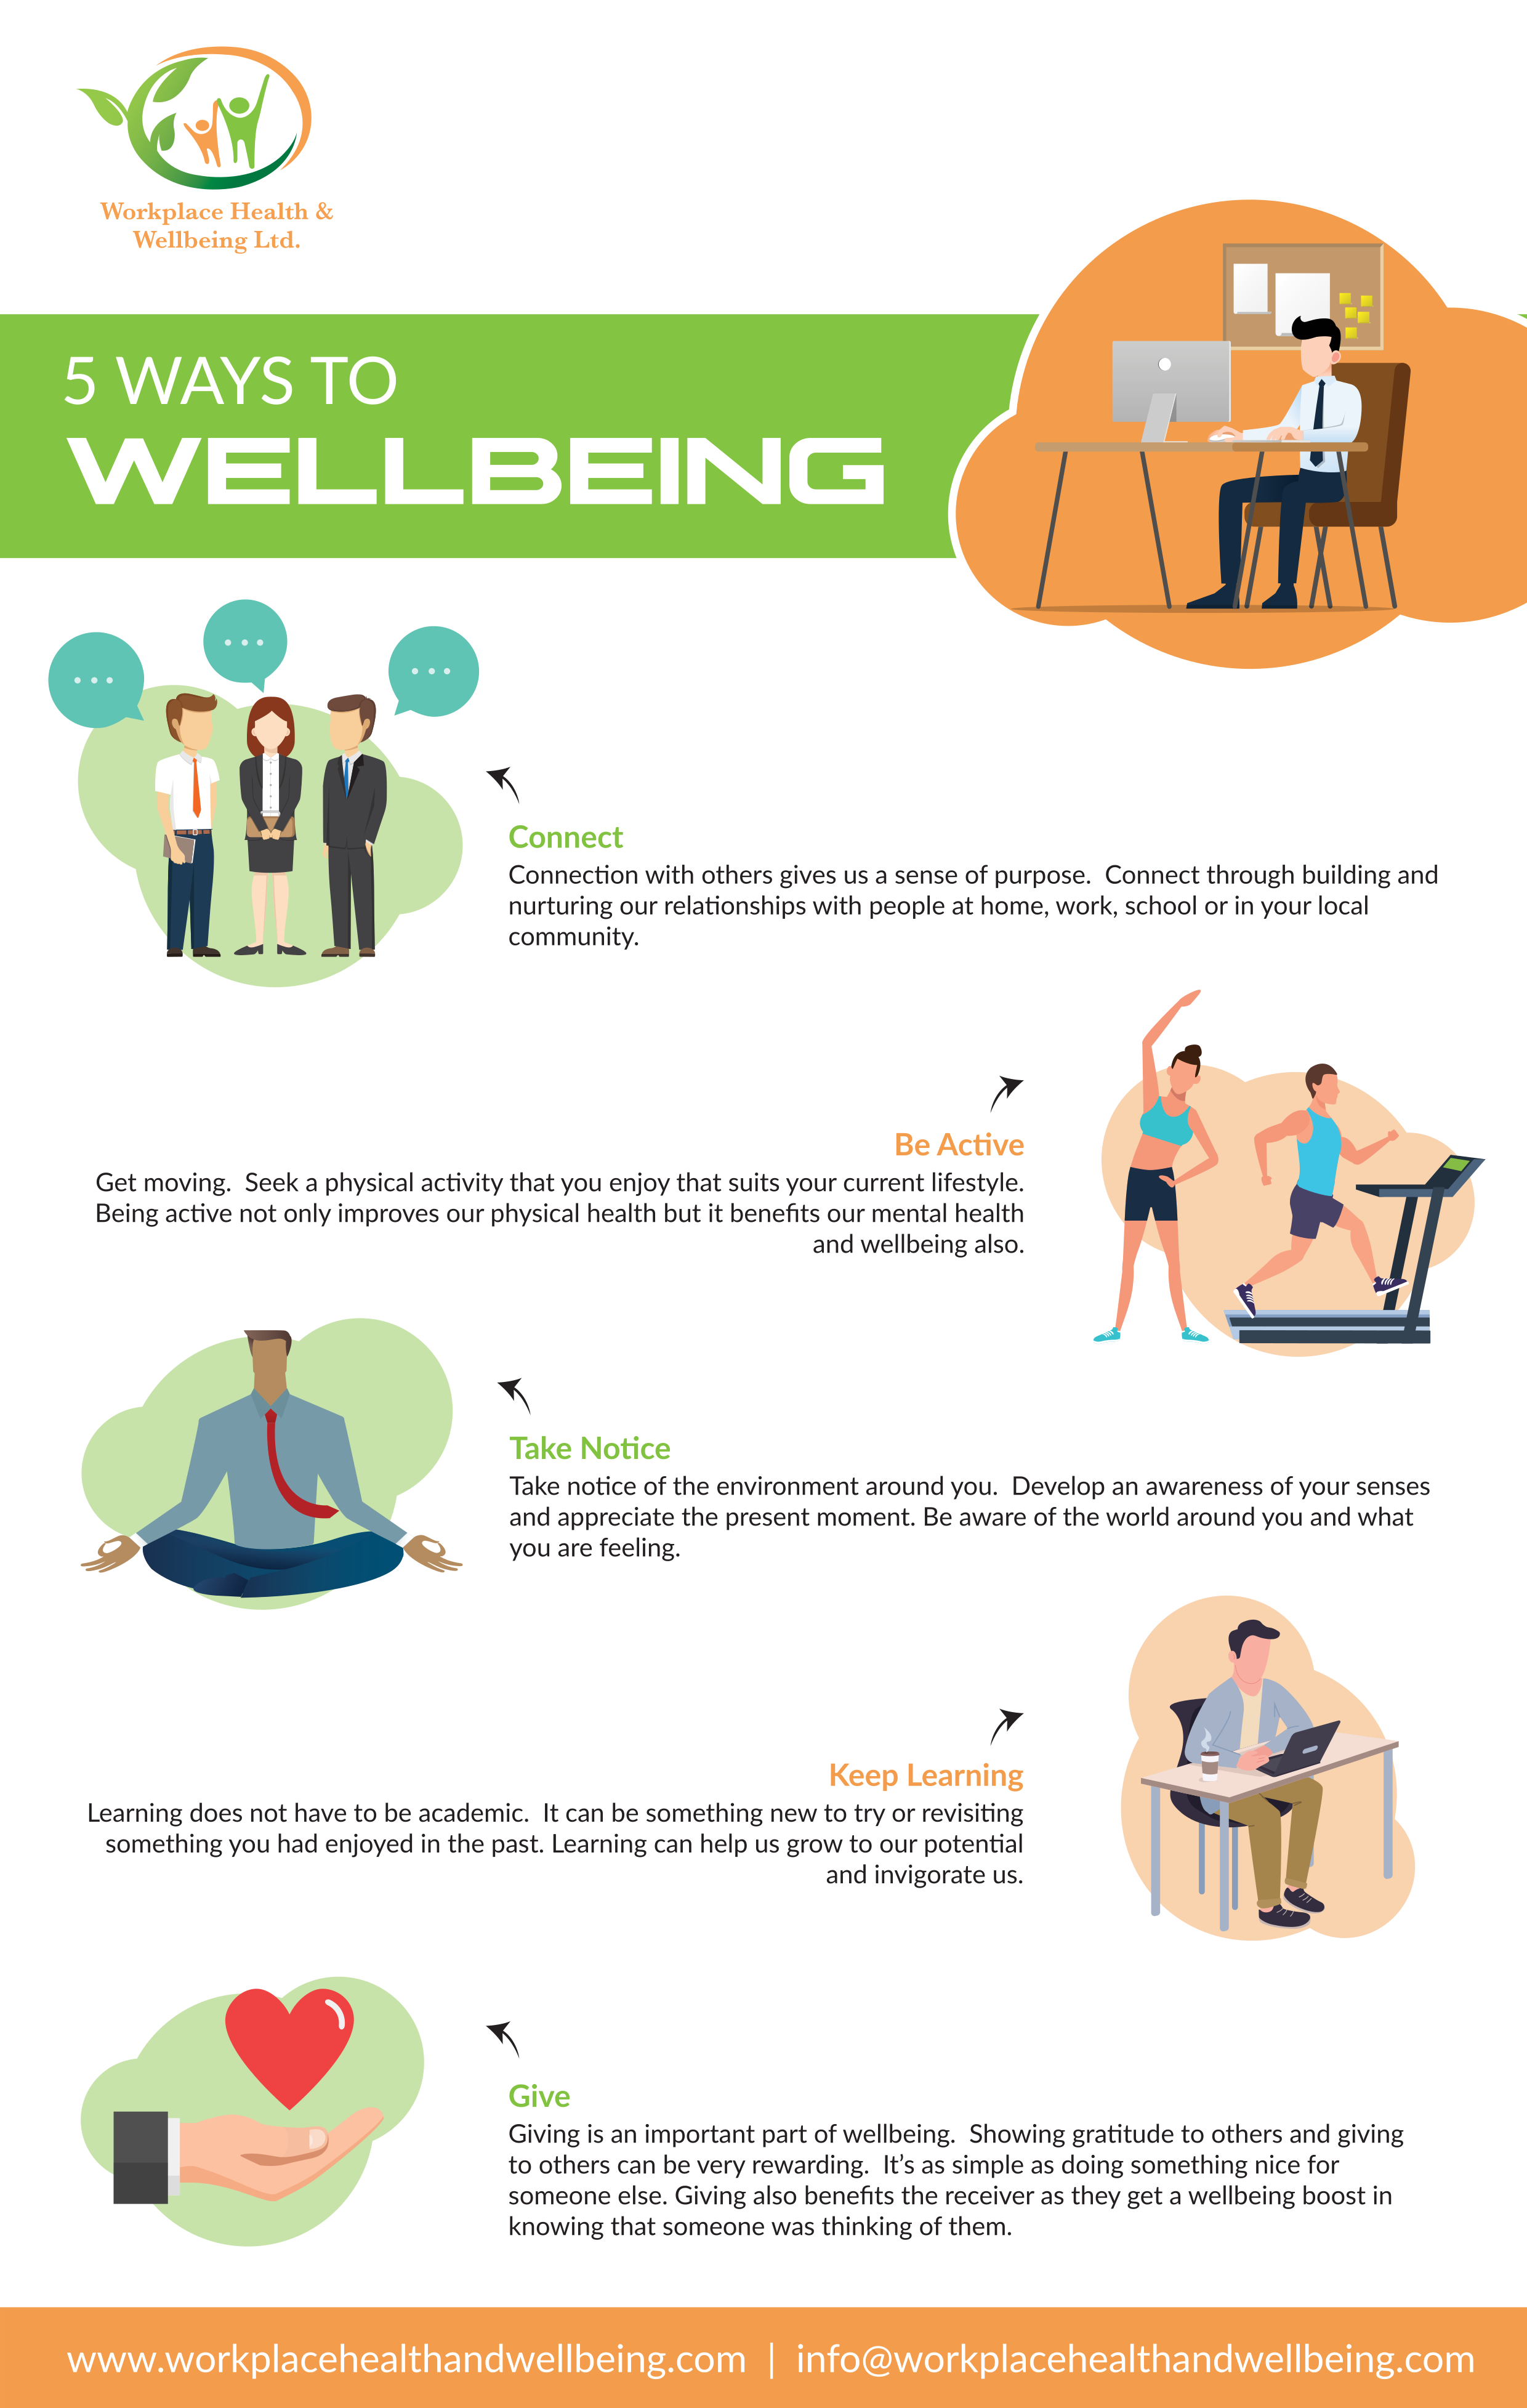 an infographic showing 5 steps to wellbeing